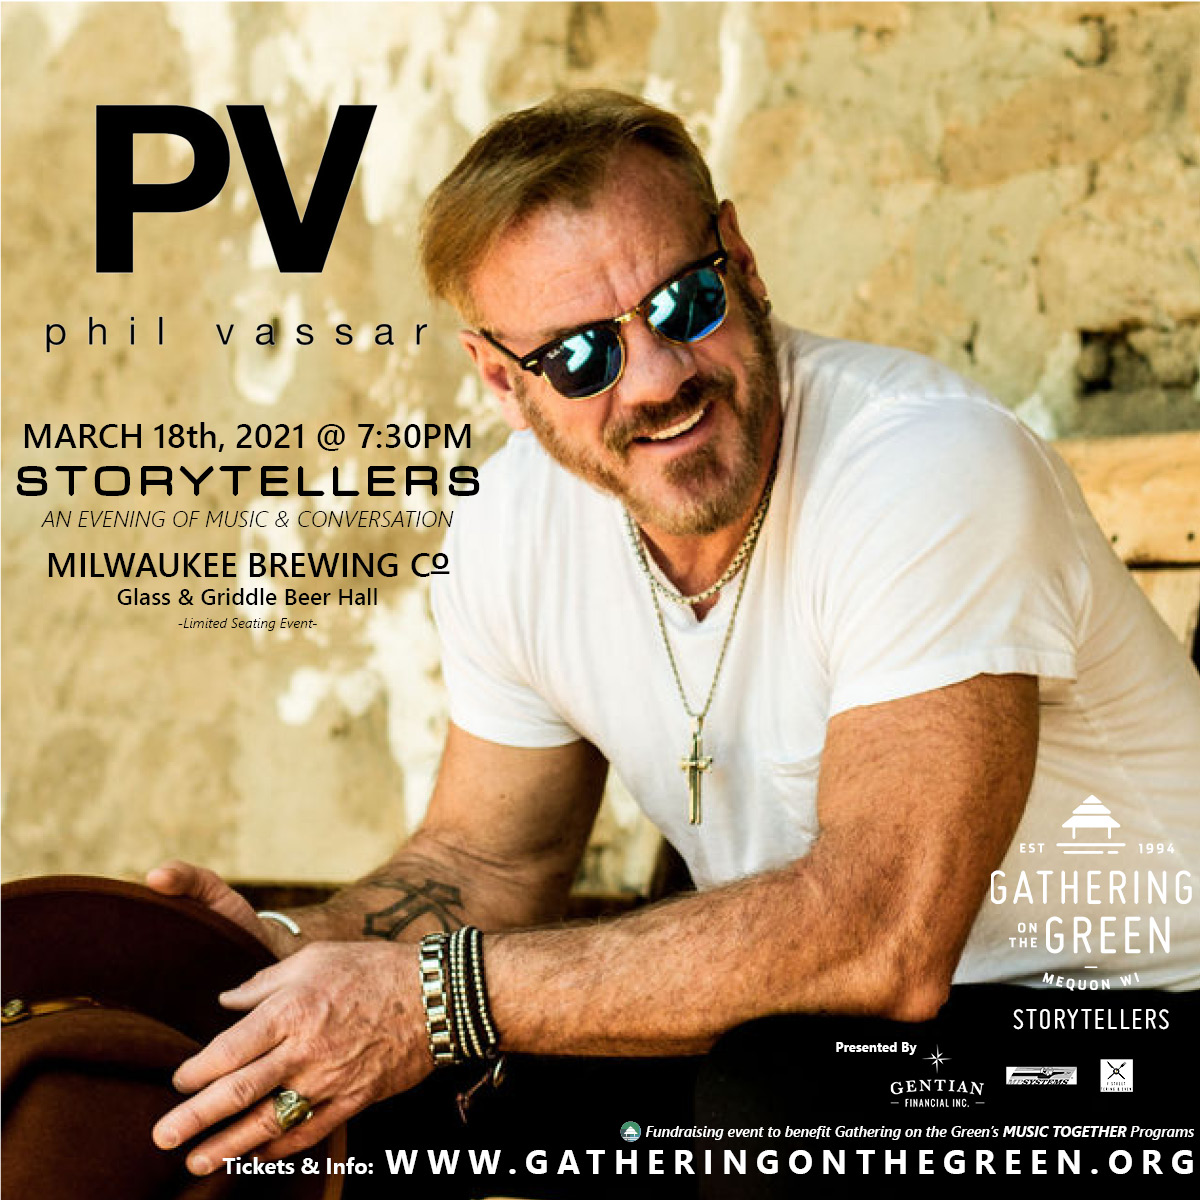 Phil Vassar_4x4_Gathering on the Green_Storytellers_2021